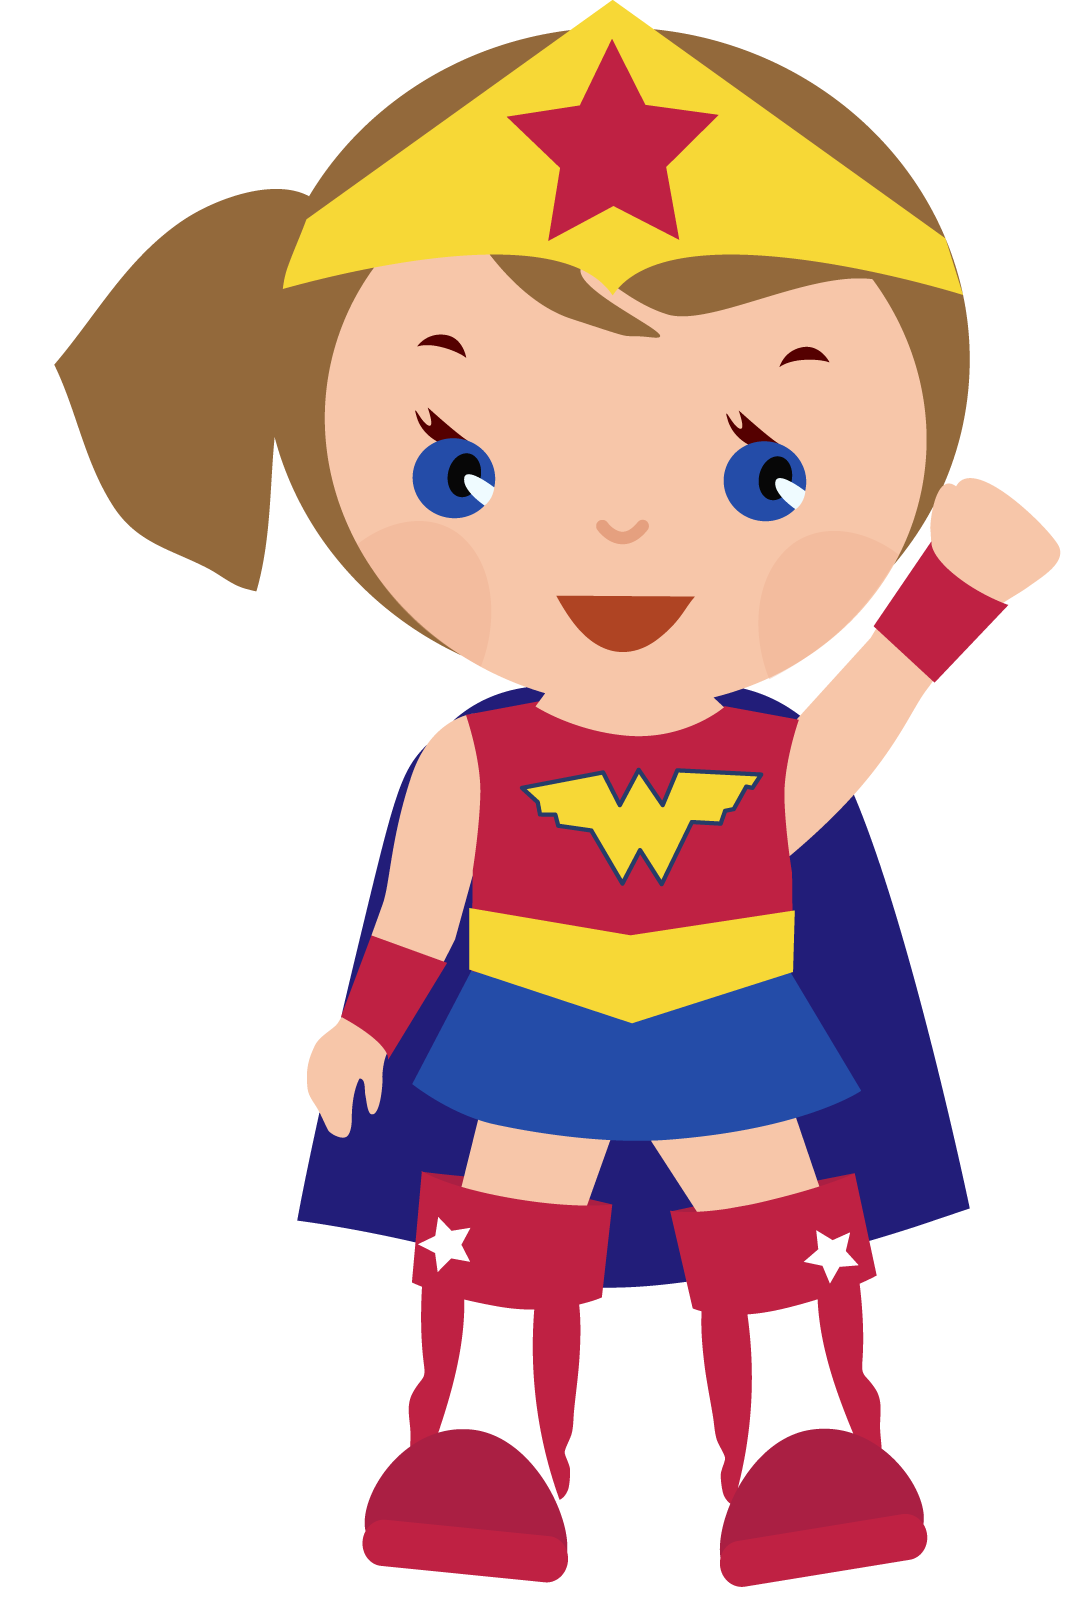 Money shower clipart clipart royalty free stock Superhero girl super hero clip art free clipart images clipartcow ... clipart royalty free stock